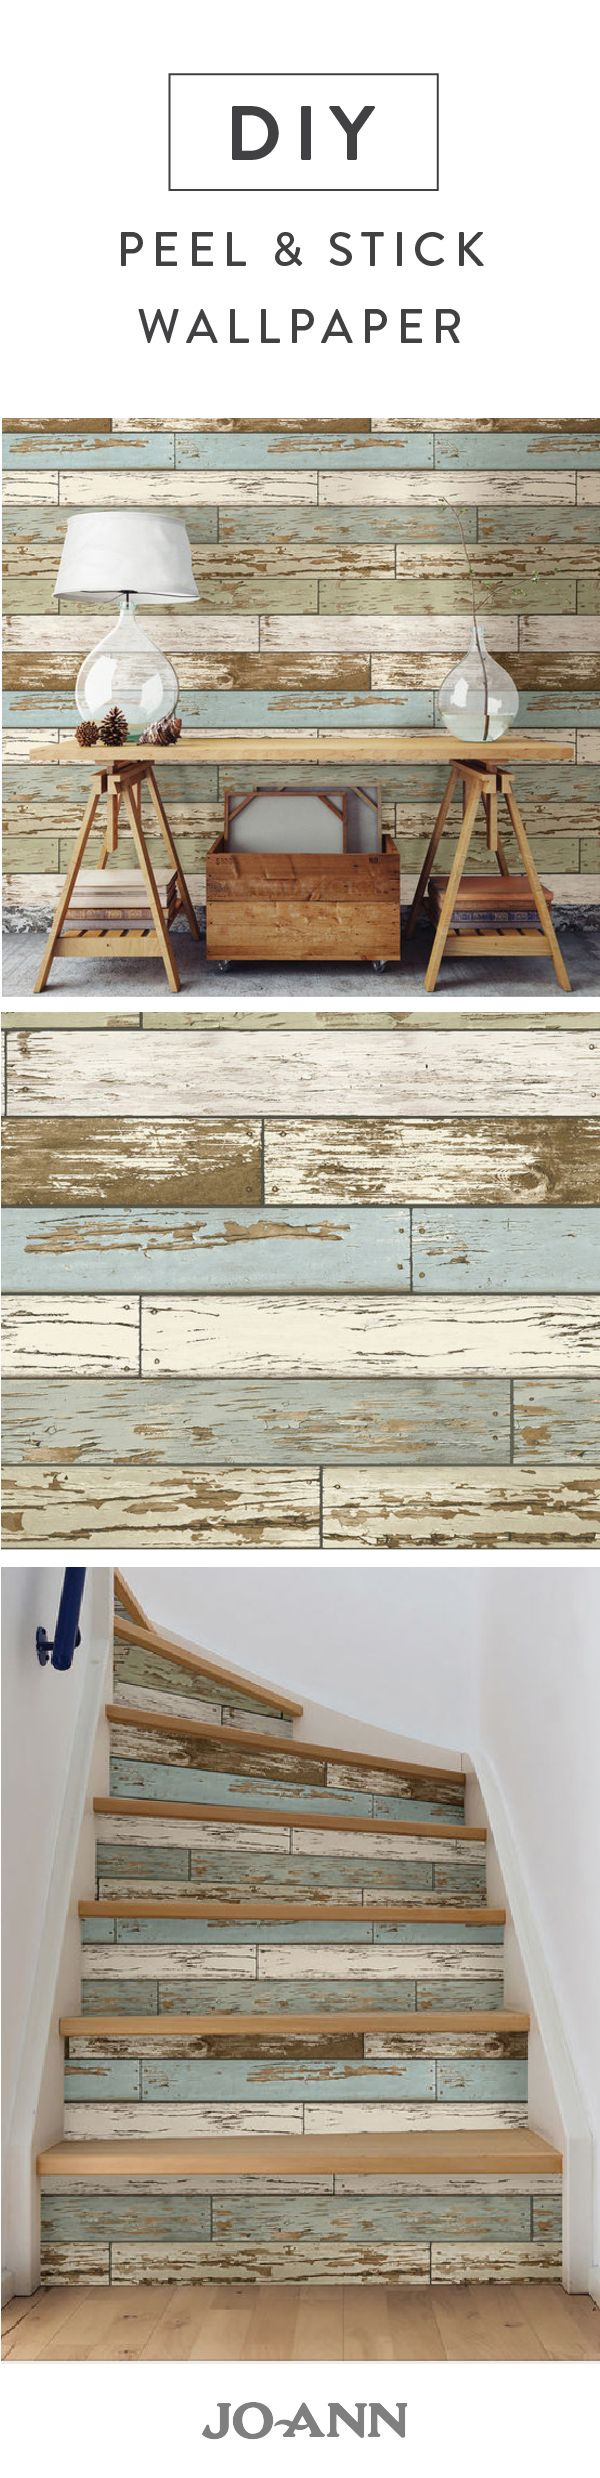 Easily add the look of rustic charm into your home with this distressed wood peel and stick wallpaper. We particularly love the idea of adding it to your stairs for a pop of personality and color.